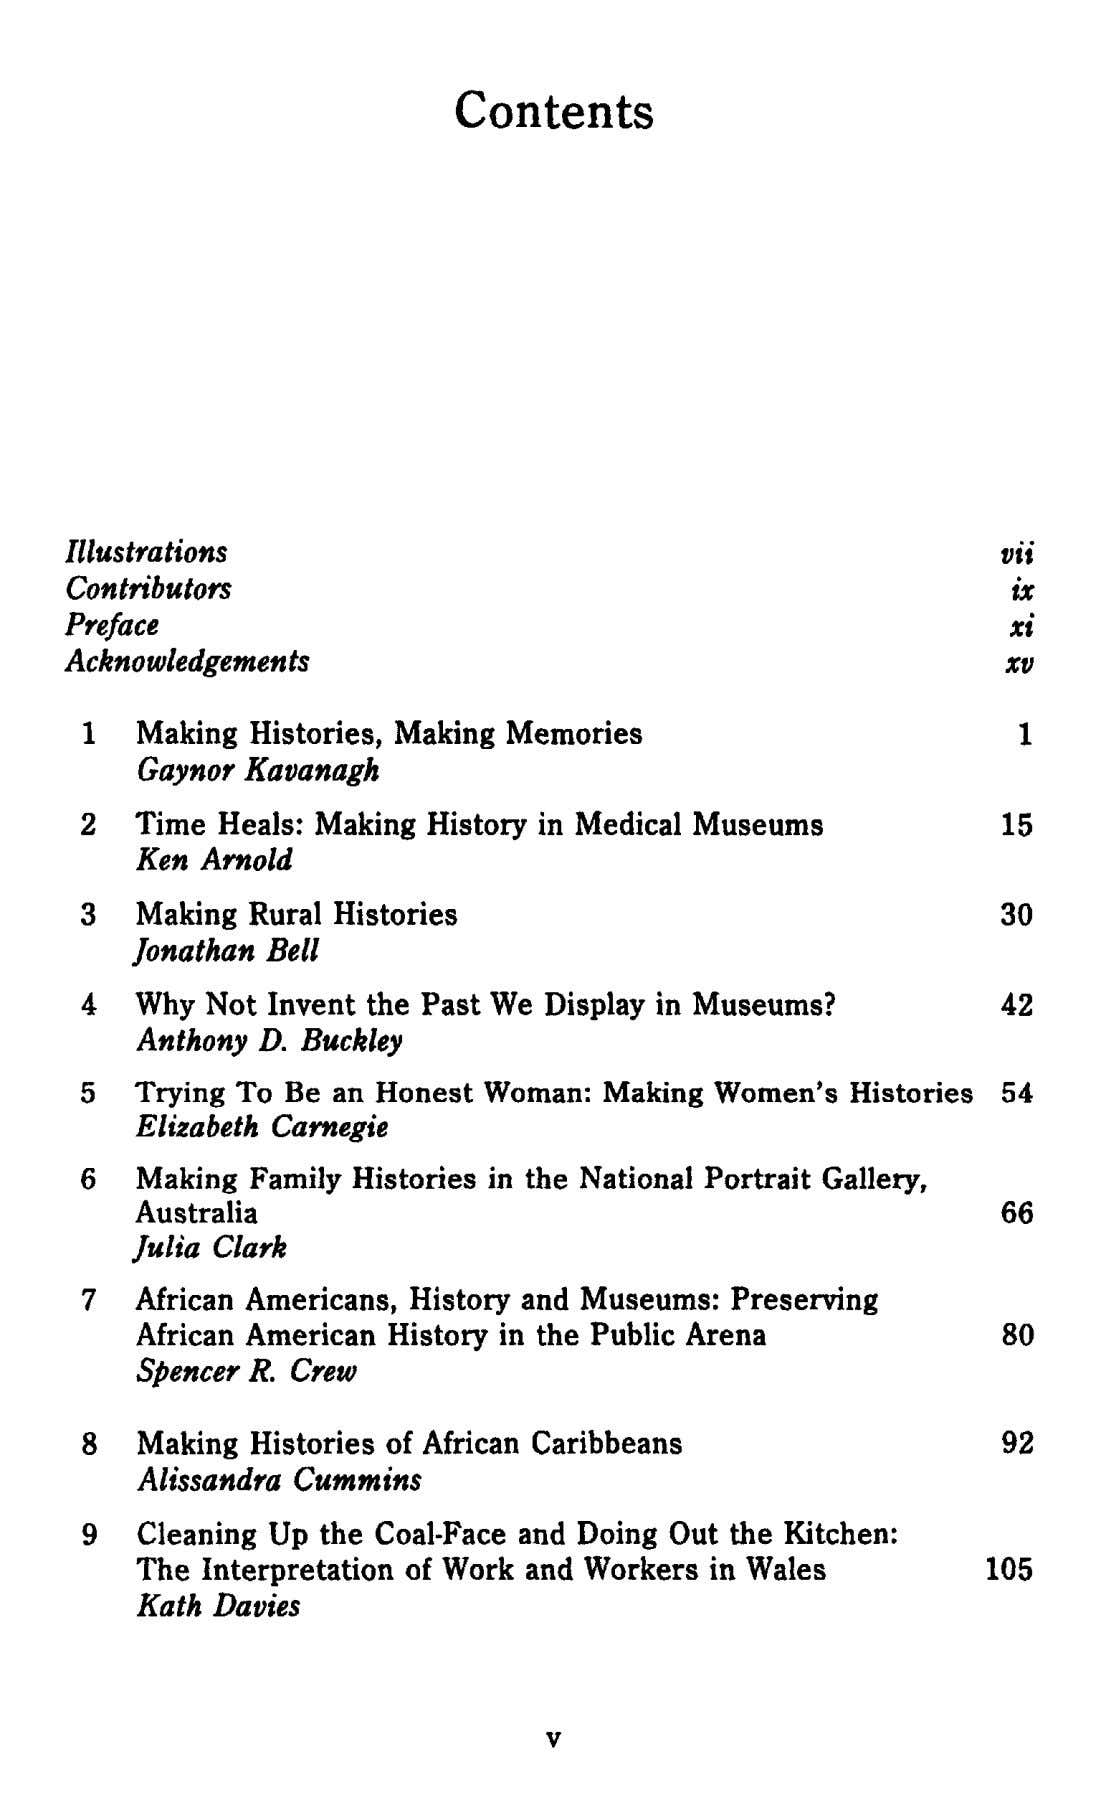 Contents Illustrations vii Contributors ix Preface xi Acknowledgements xv 1 Making Histories, Making Memories